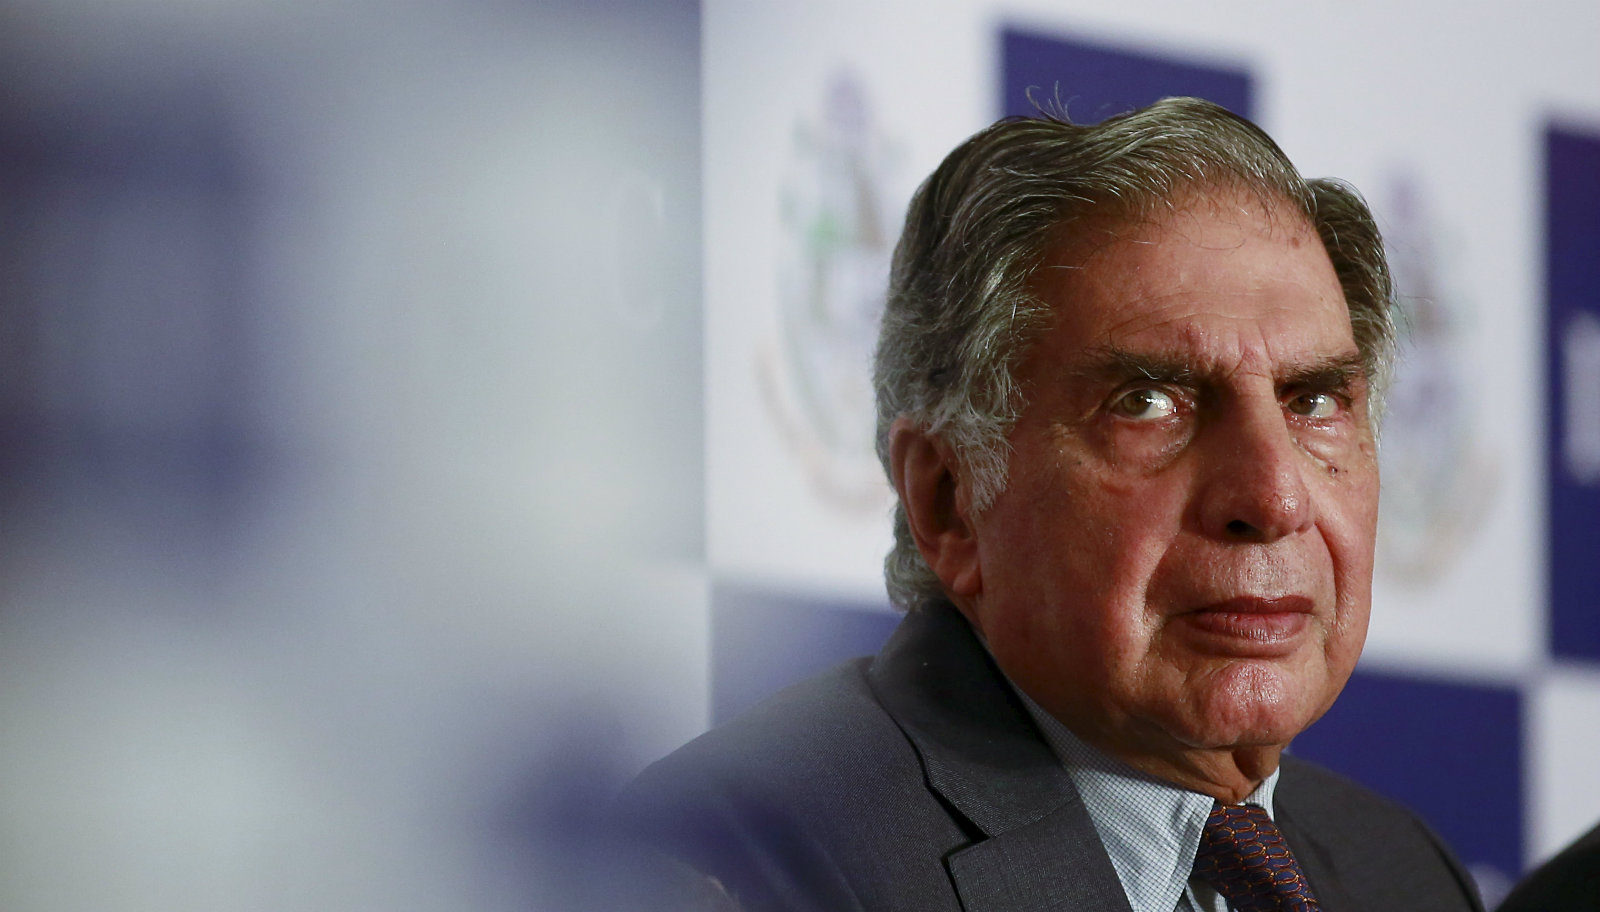 Tata Group Chairman Emeritus Ratan Tata attends a panel discussion during the annual general meeting of Indian Merchants' Chamber (IMC) in Mumbai, India, June 18, 2015.